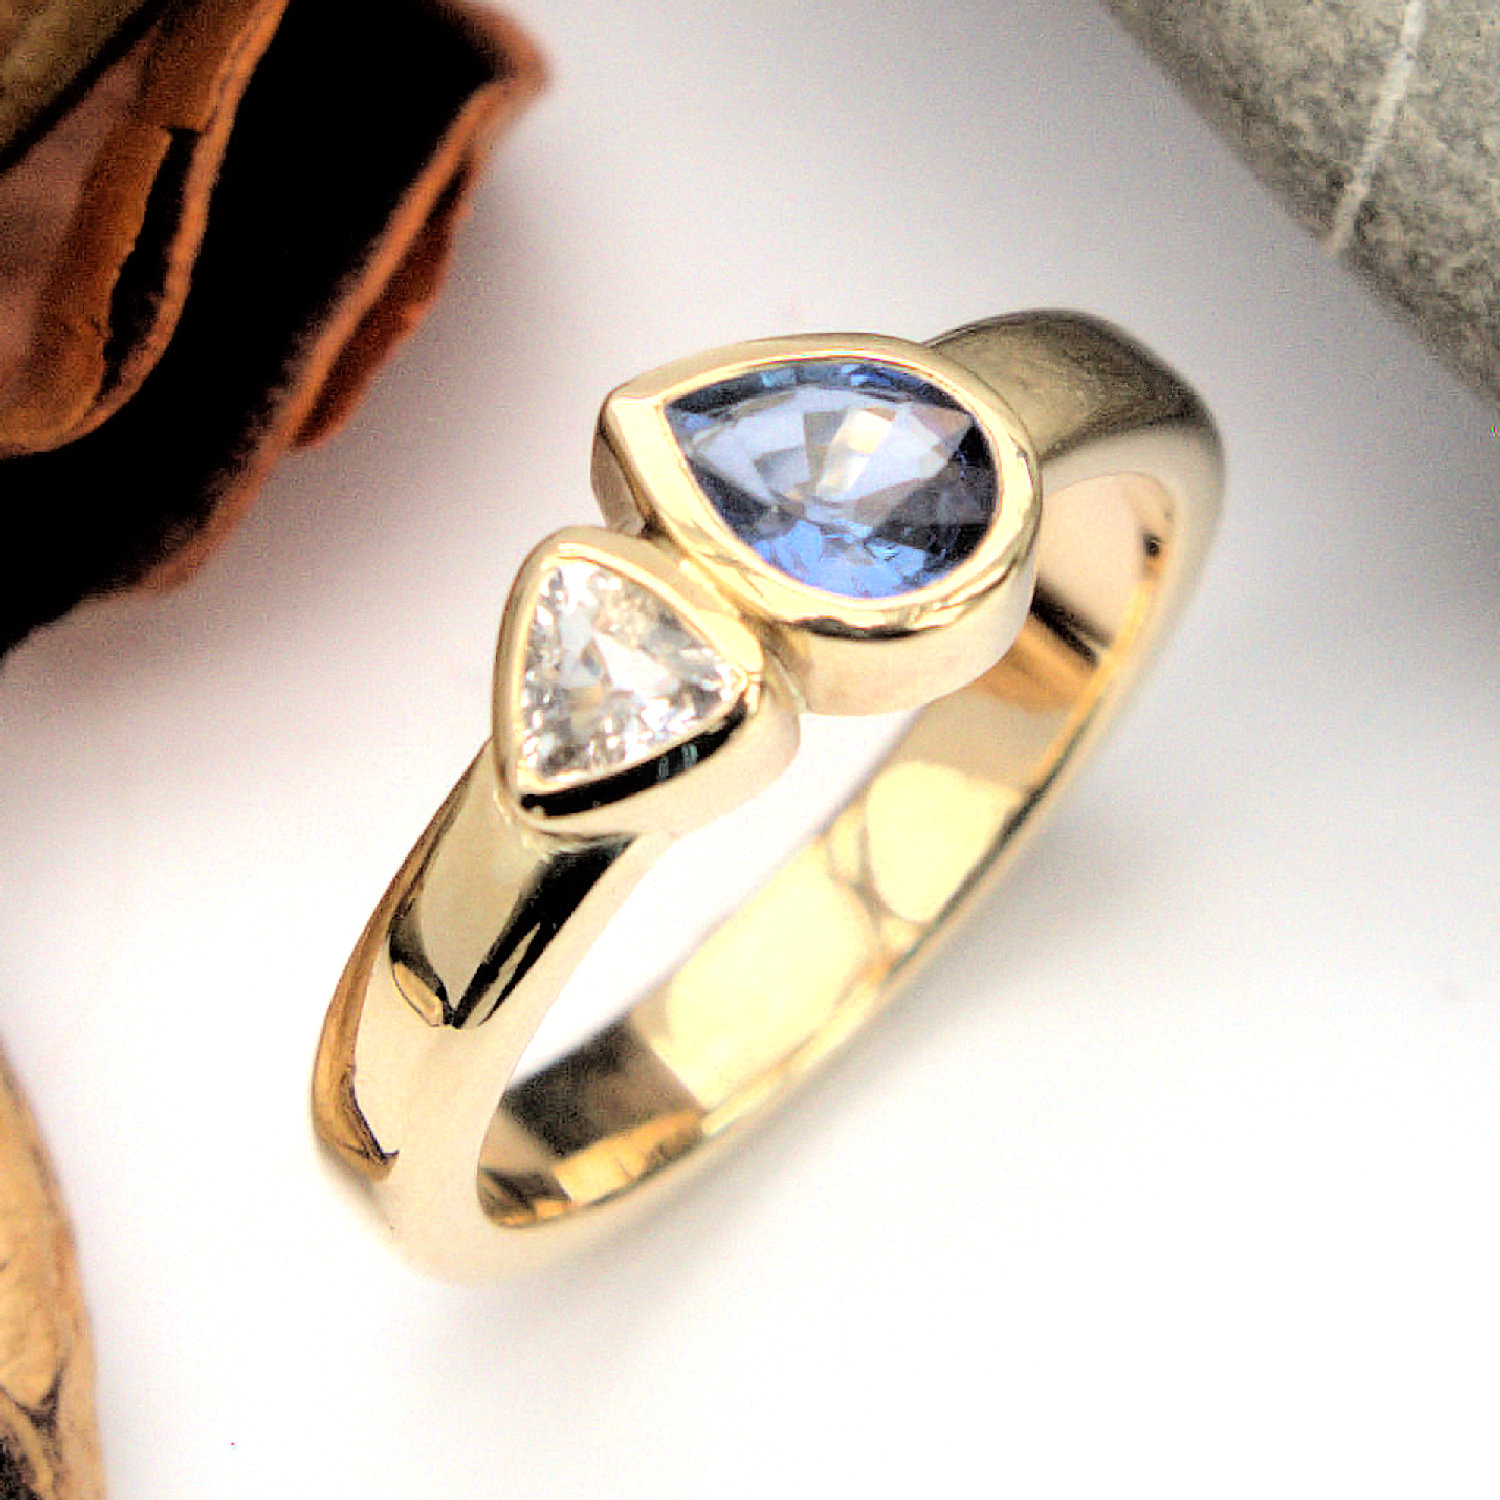 Blue and white sapphire ring